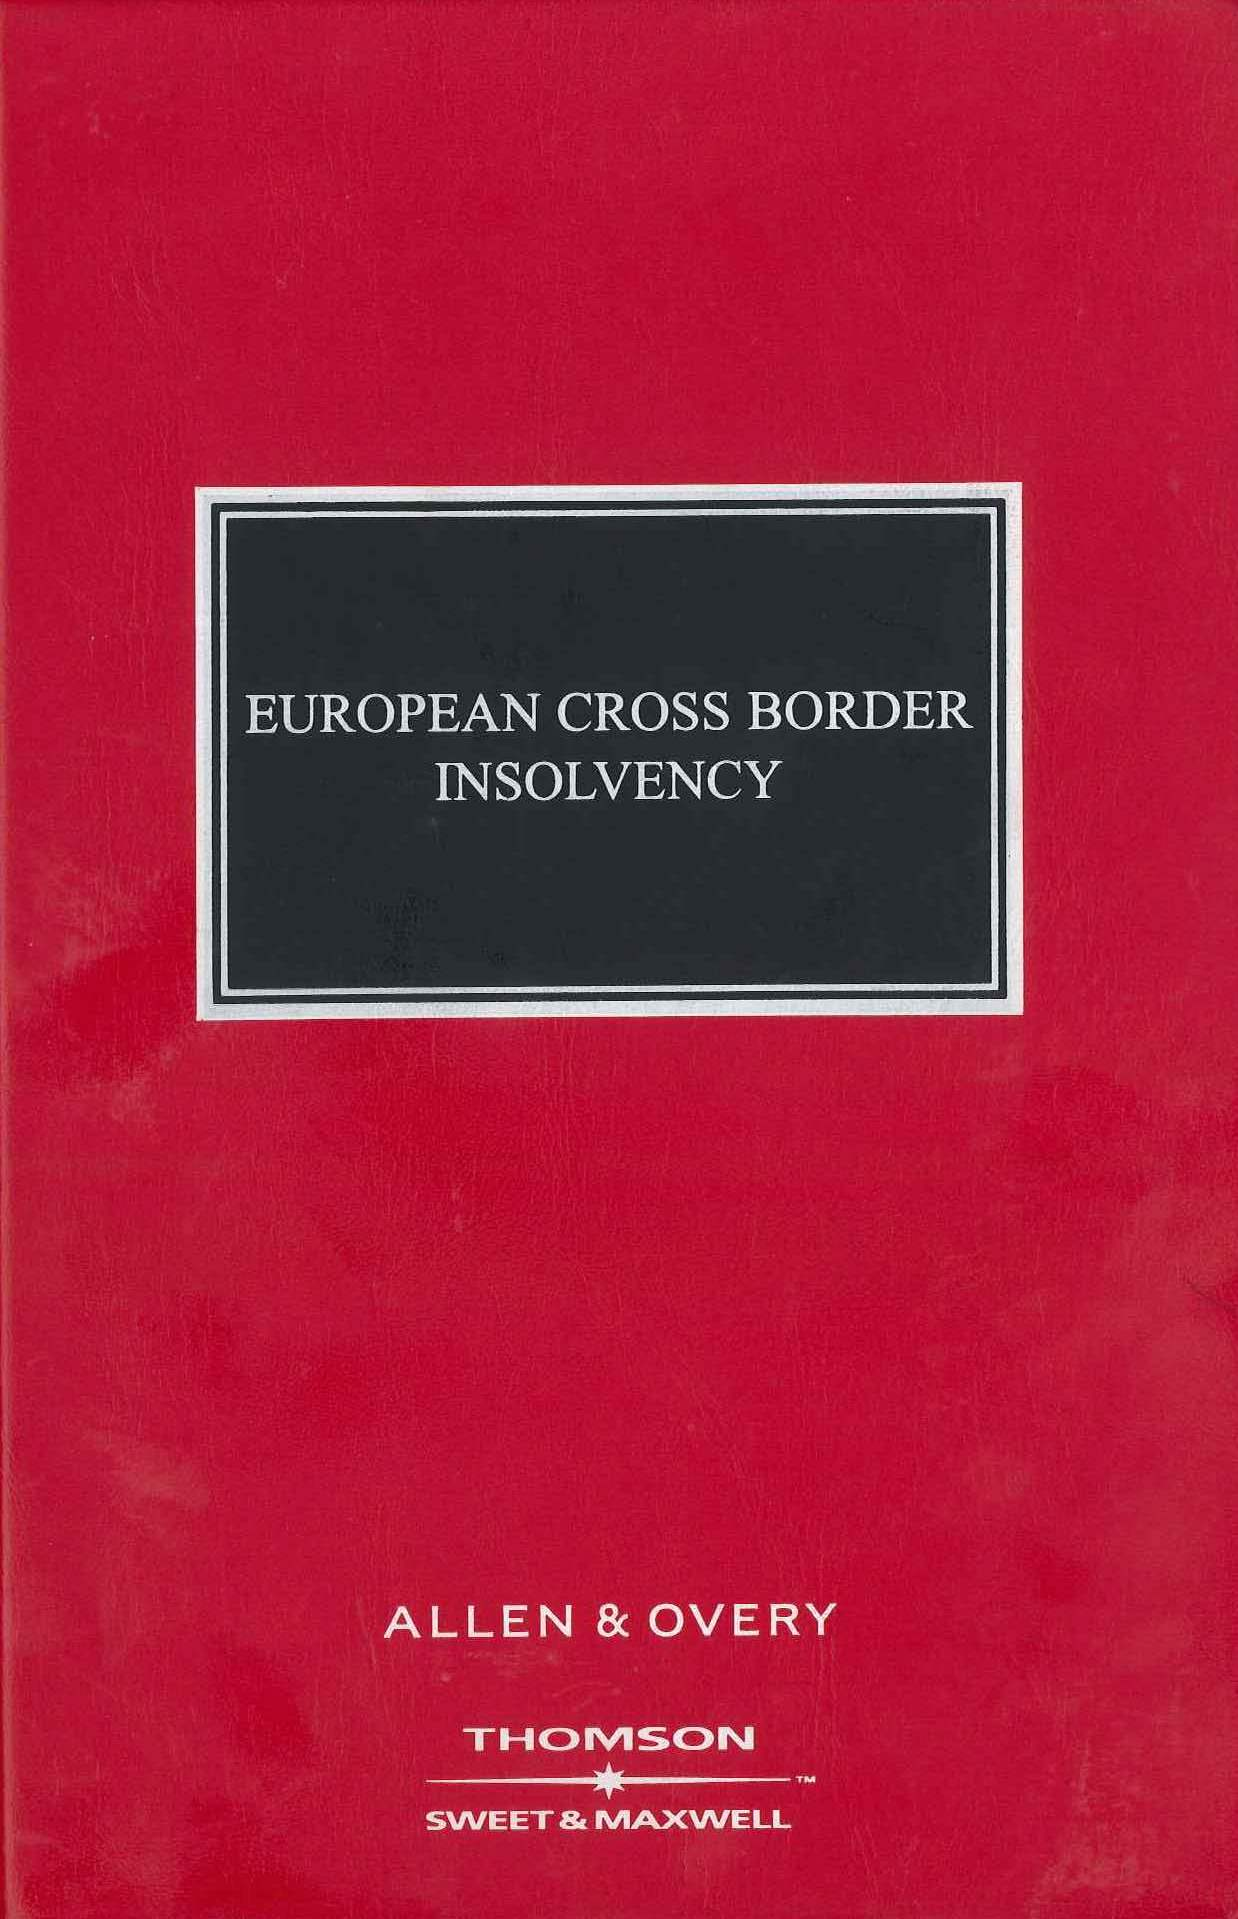 european-cross-border-insolvency-proceedings-bulgaria-2007